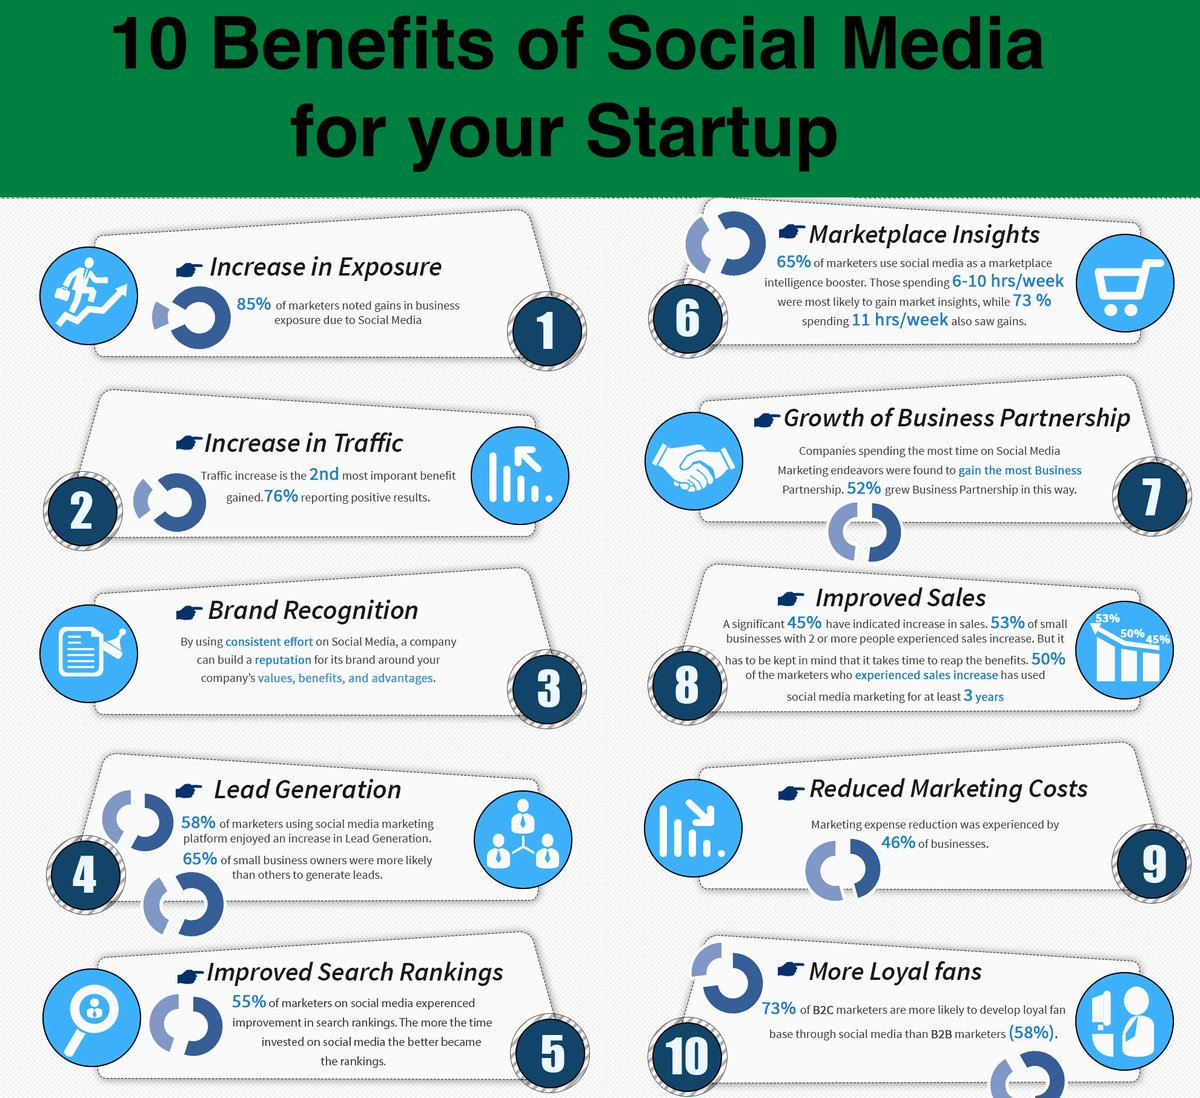 10 Benefits of #SocialMedia for Your #Startup Success [#Infographic]  #SMM #SocialMediaMarketing #LeadGeneration #Sales #SEO @ipfconline1<br>http://pic.twitter.com/9B25xdUA2Y